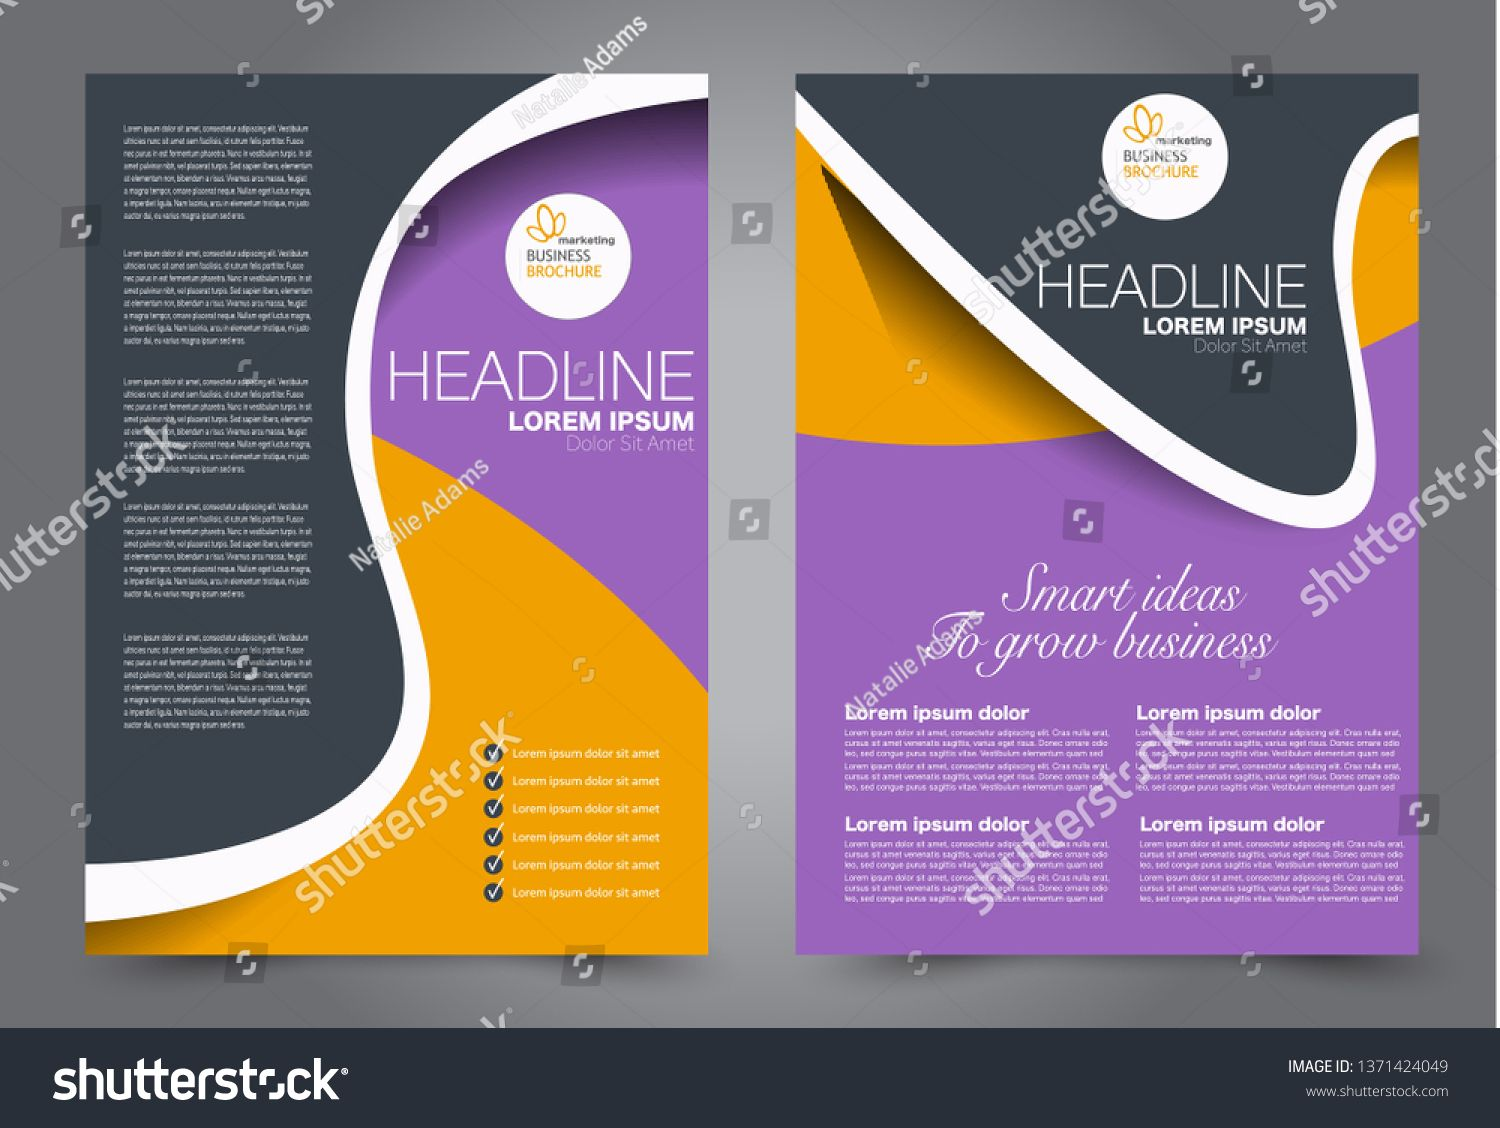 Business Ad Template from i.pinimg.com